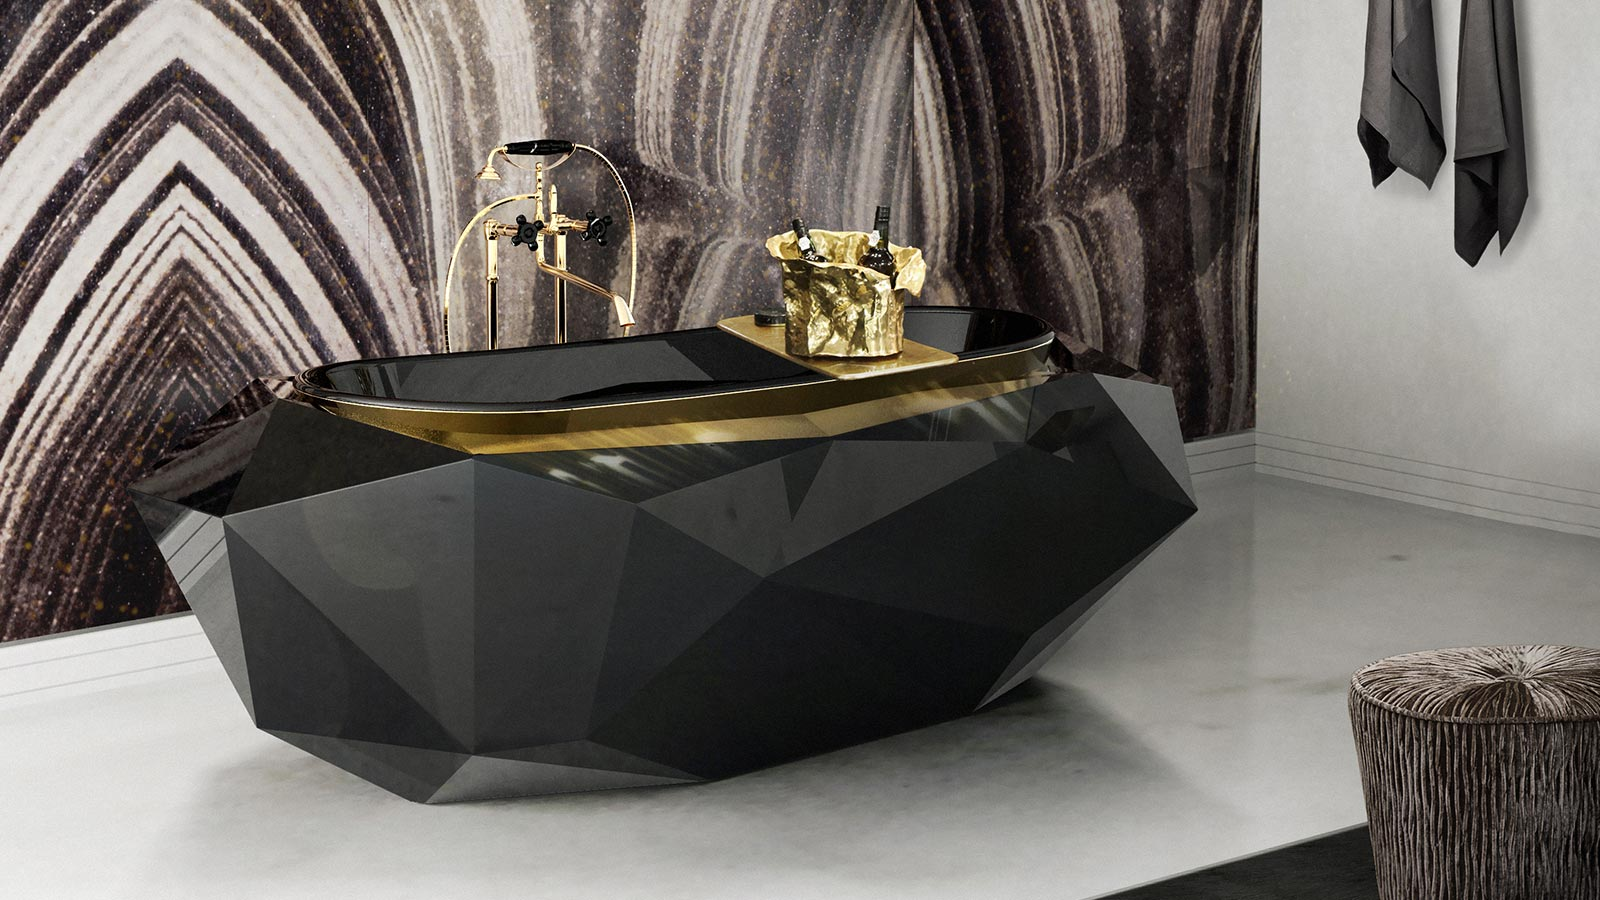 The best lighting for the most luxurious bathrooms cersaie bologna 2019 What You Need to Know About Cersaie Bologna 2019 luxurious bathrooms1 cersaie bologna 2019 What You Need to Know About Cersaie Bologna 2019 luxurious bathrooms1